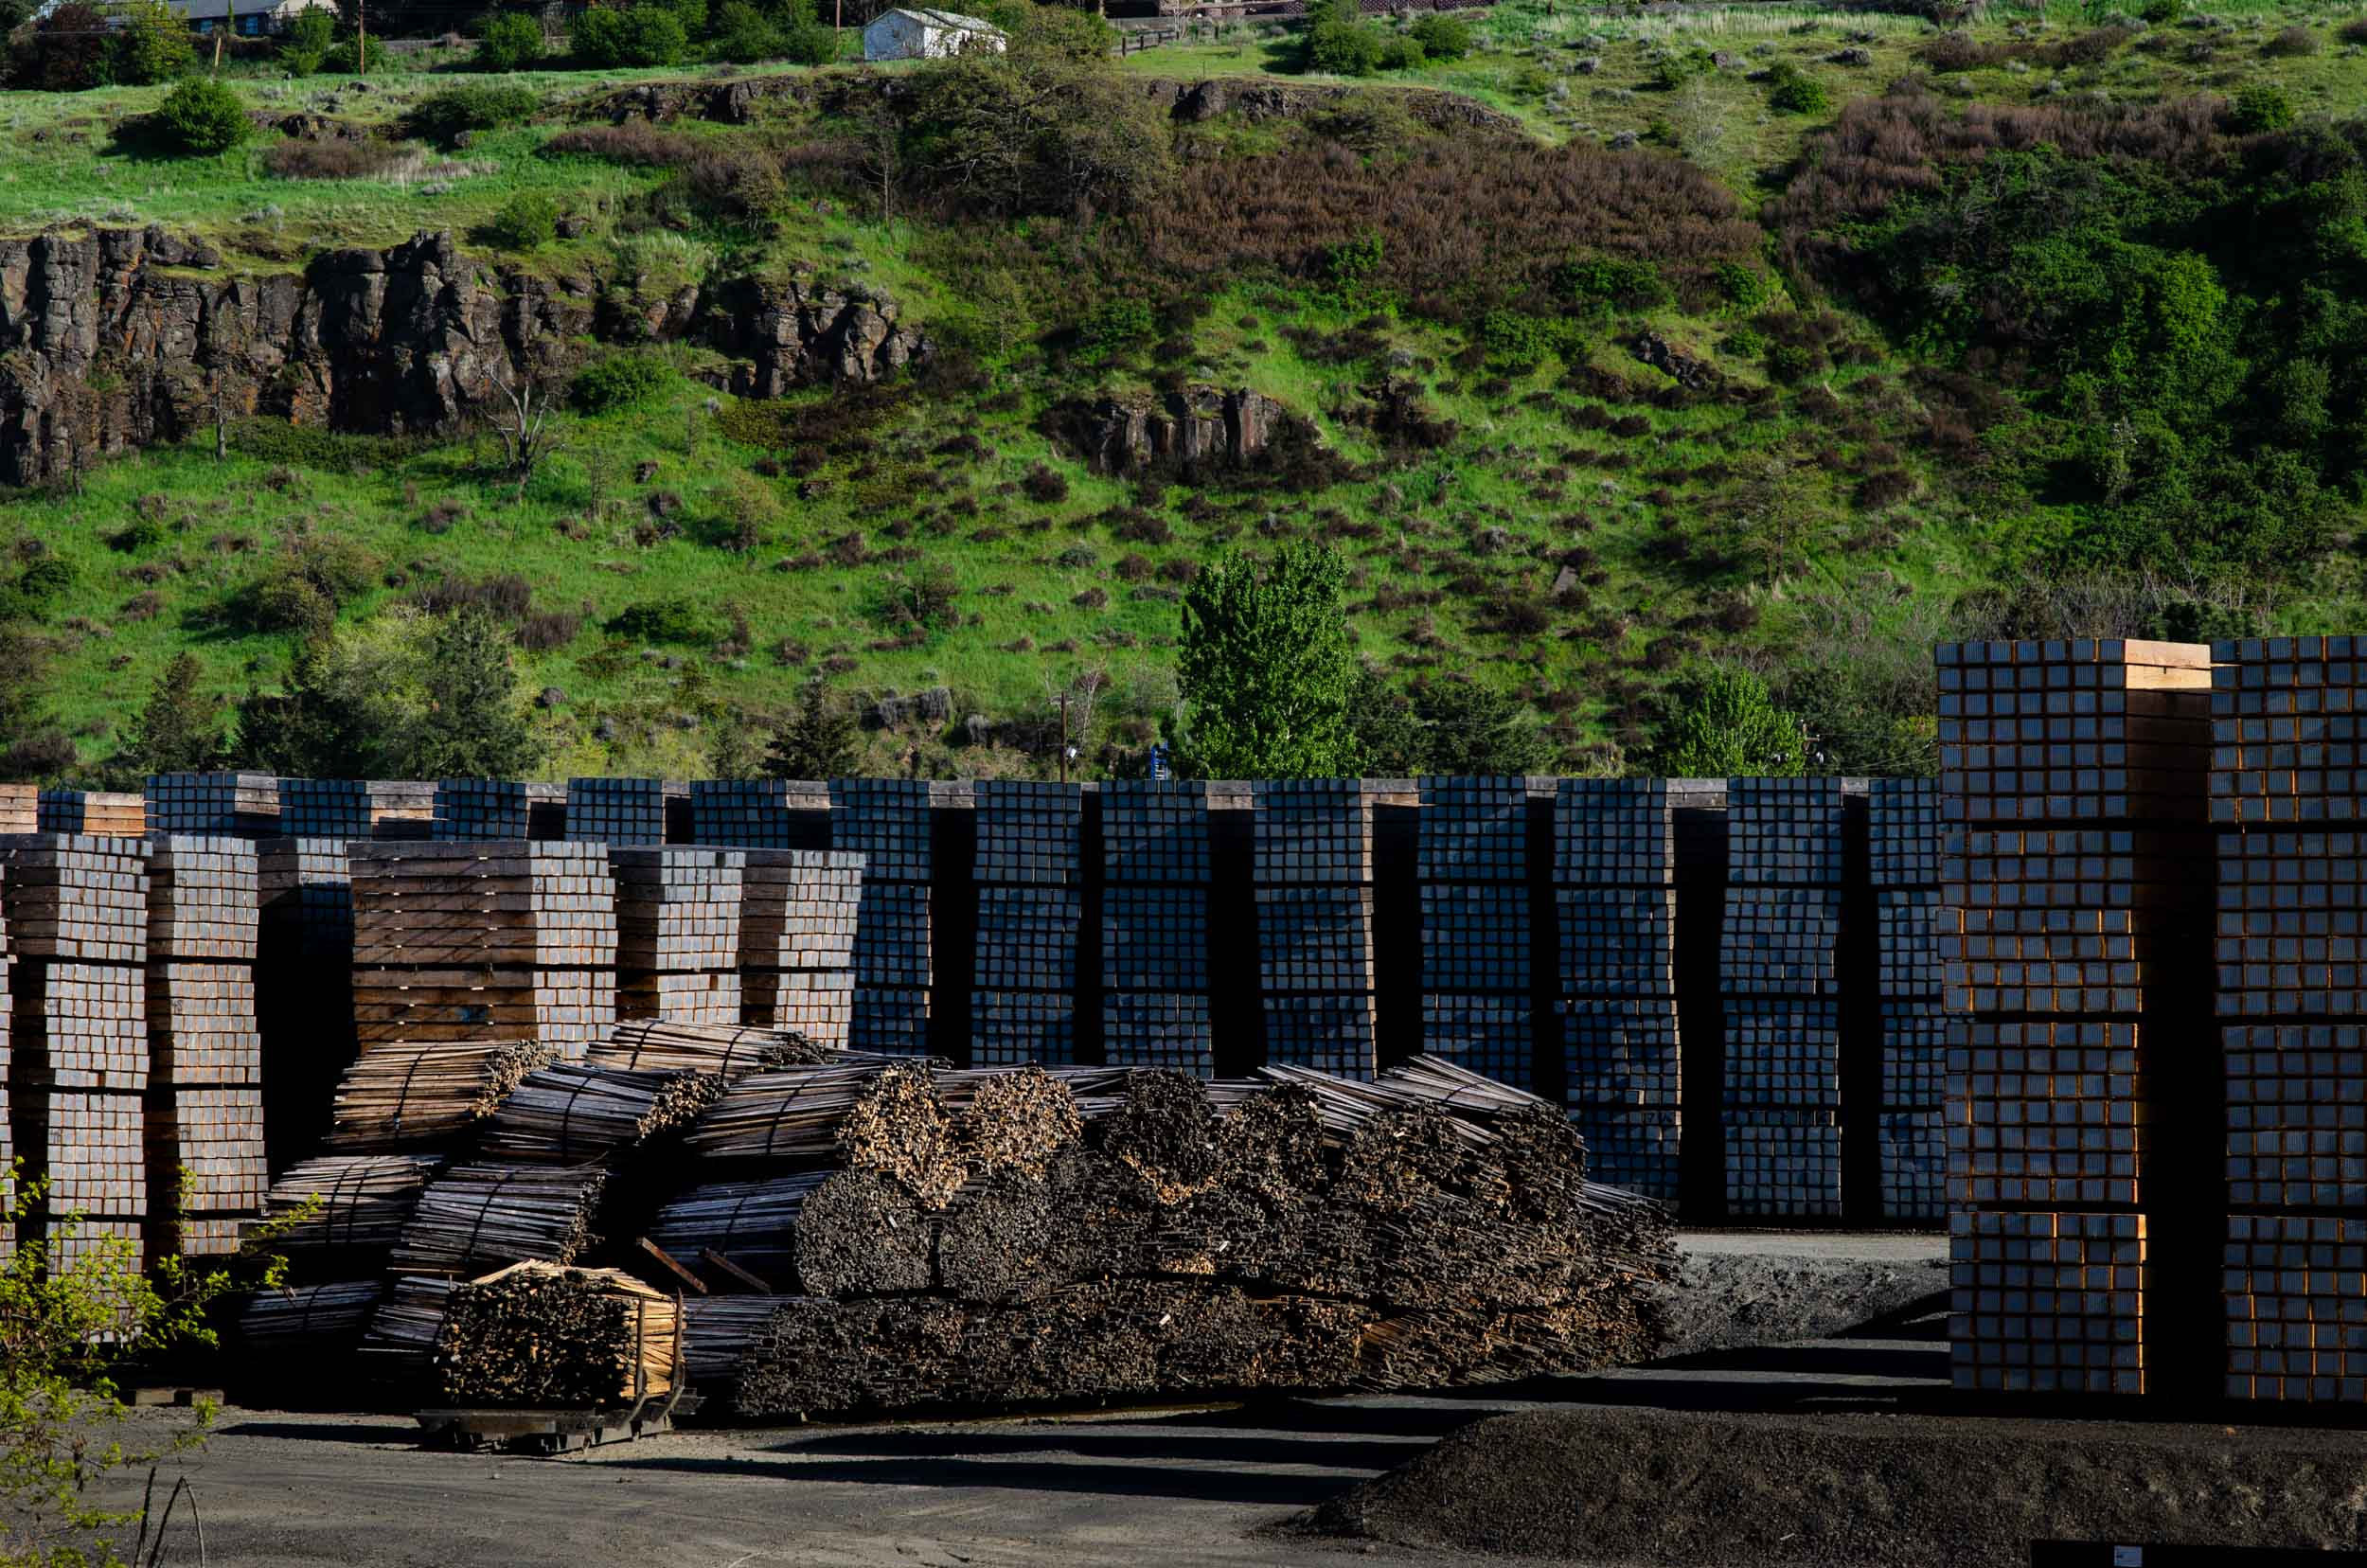 Railroad ties are stored in the yard at AmeriTies West, LLC in The Dalles, Ore. AmeriTies processes approximately 1.2 million ties annually, using 3 to 4 million lbs of creosote to preserve the wood.